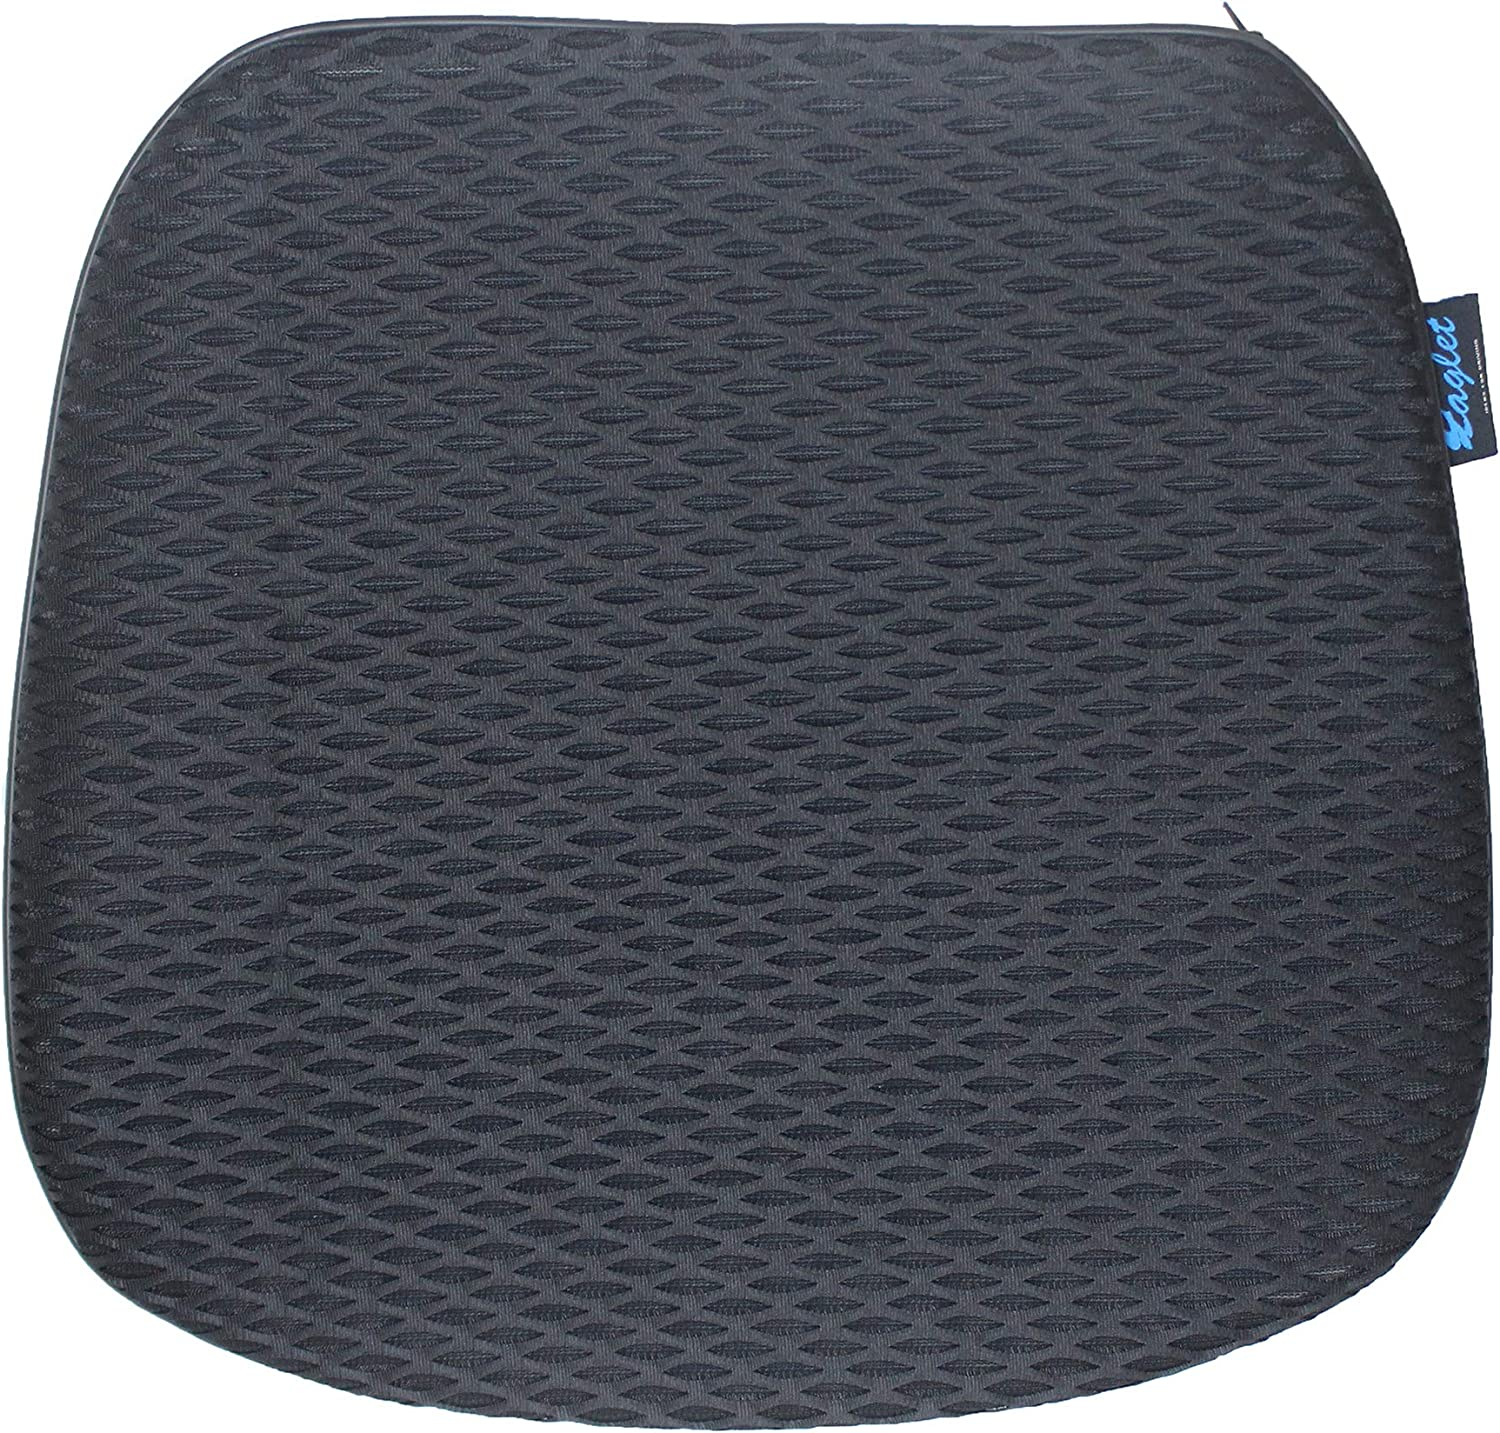 and Outdoor Ice Pad for Support in Car Eaglet Cooling Car Seat Cushion Home Office Anti-Slip Backing Multi-Use Universal Seat Cushion with Breathable 3D Stereo Mesh Cover Cooling Gel Beige